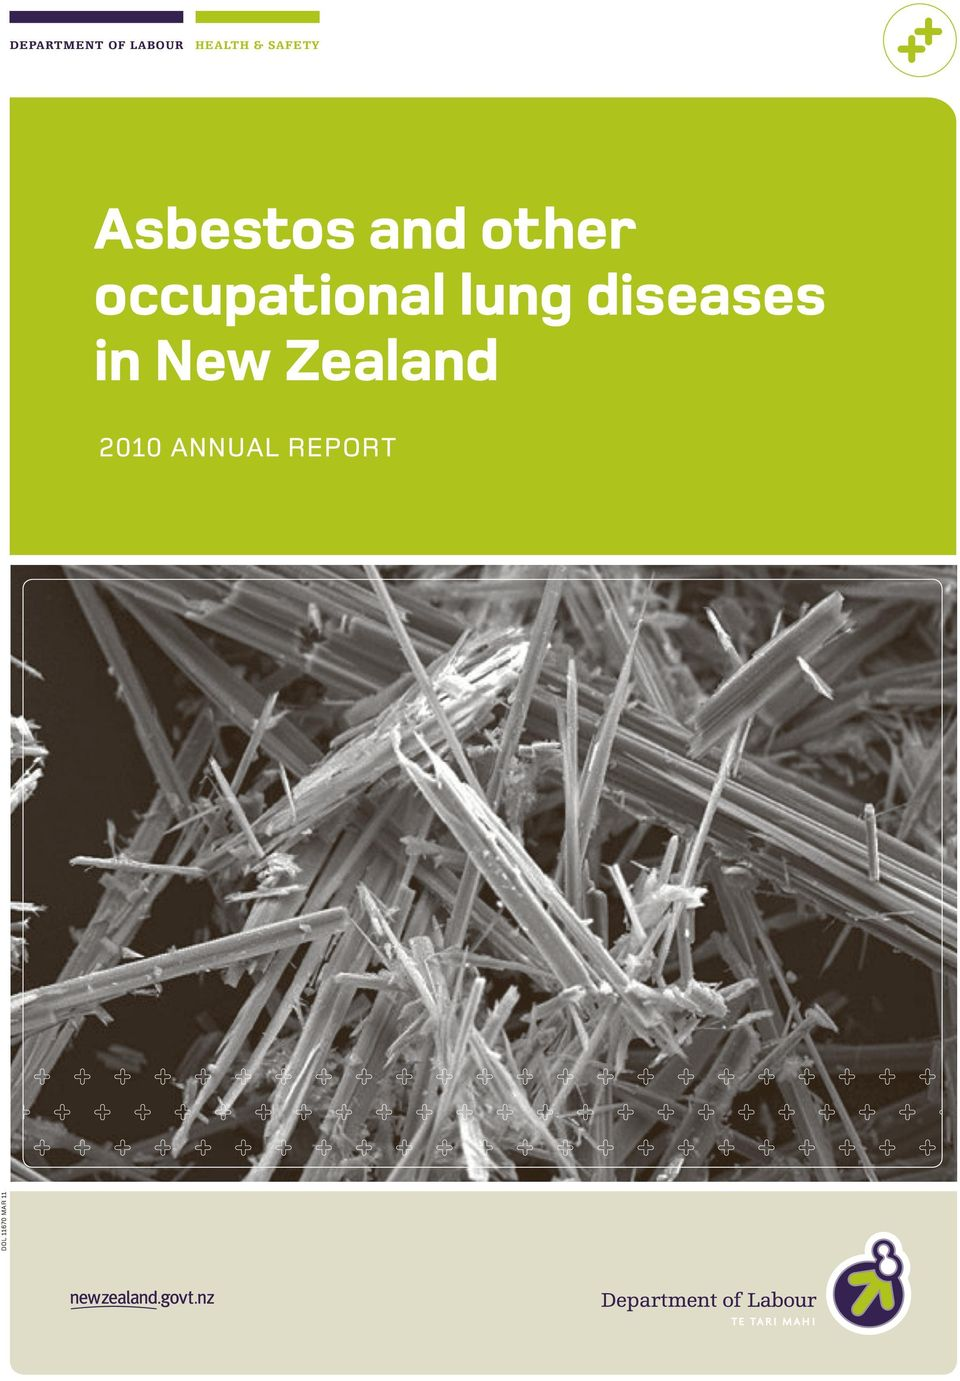 occupational lung diseases in New